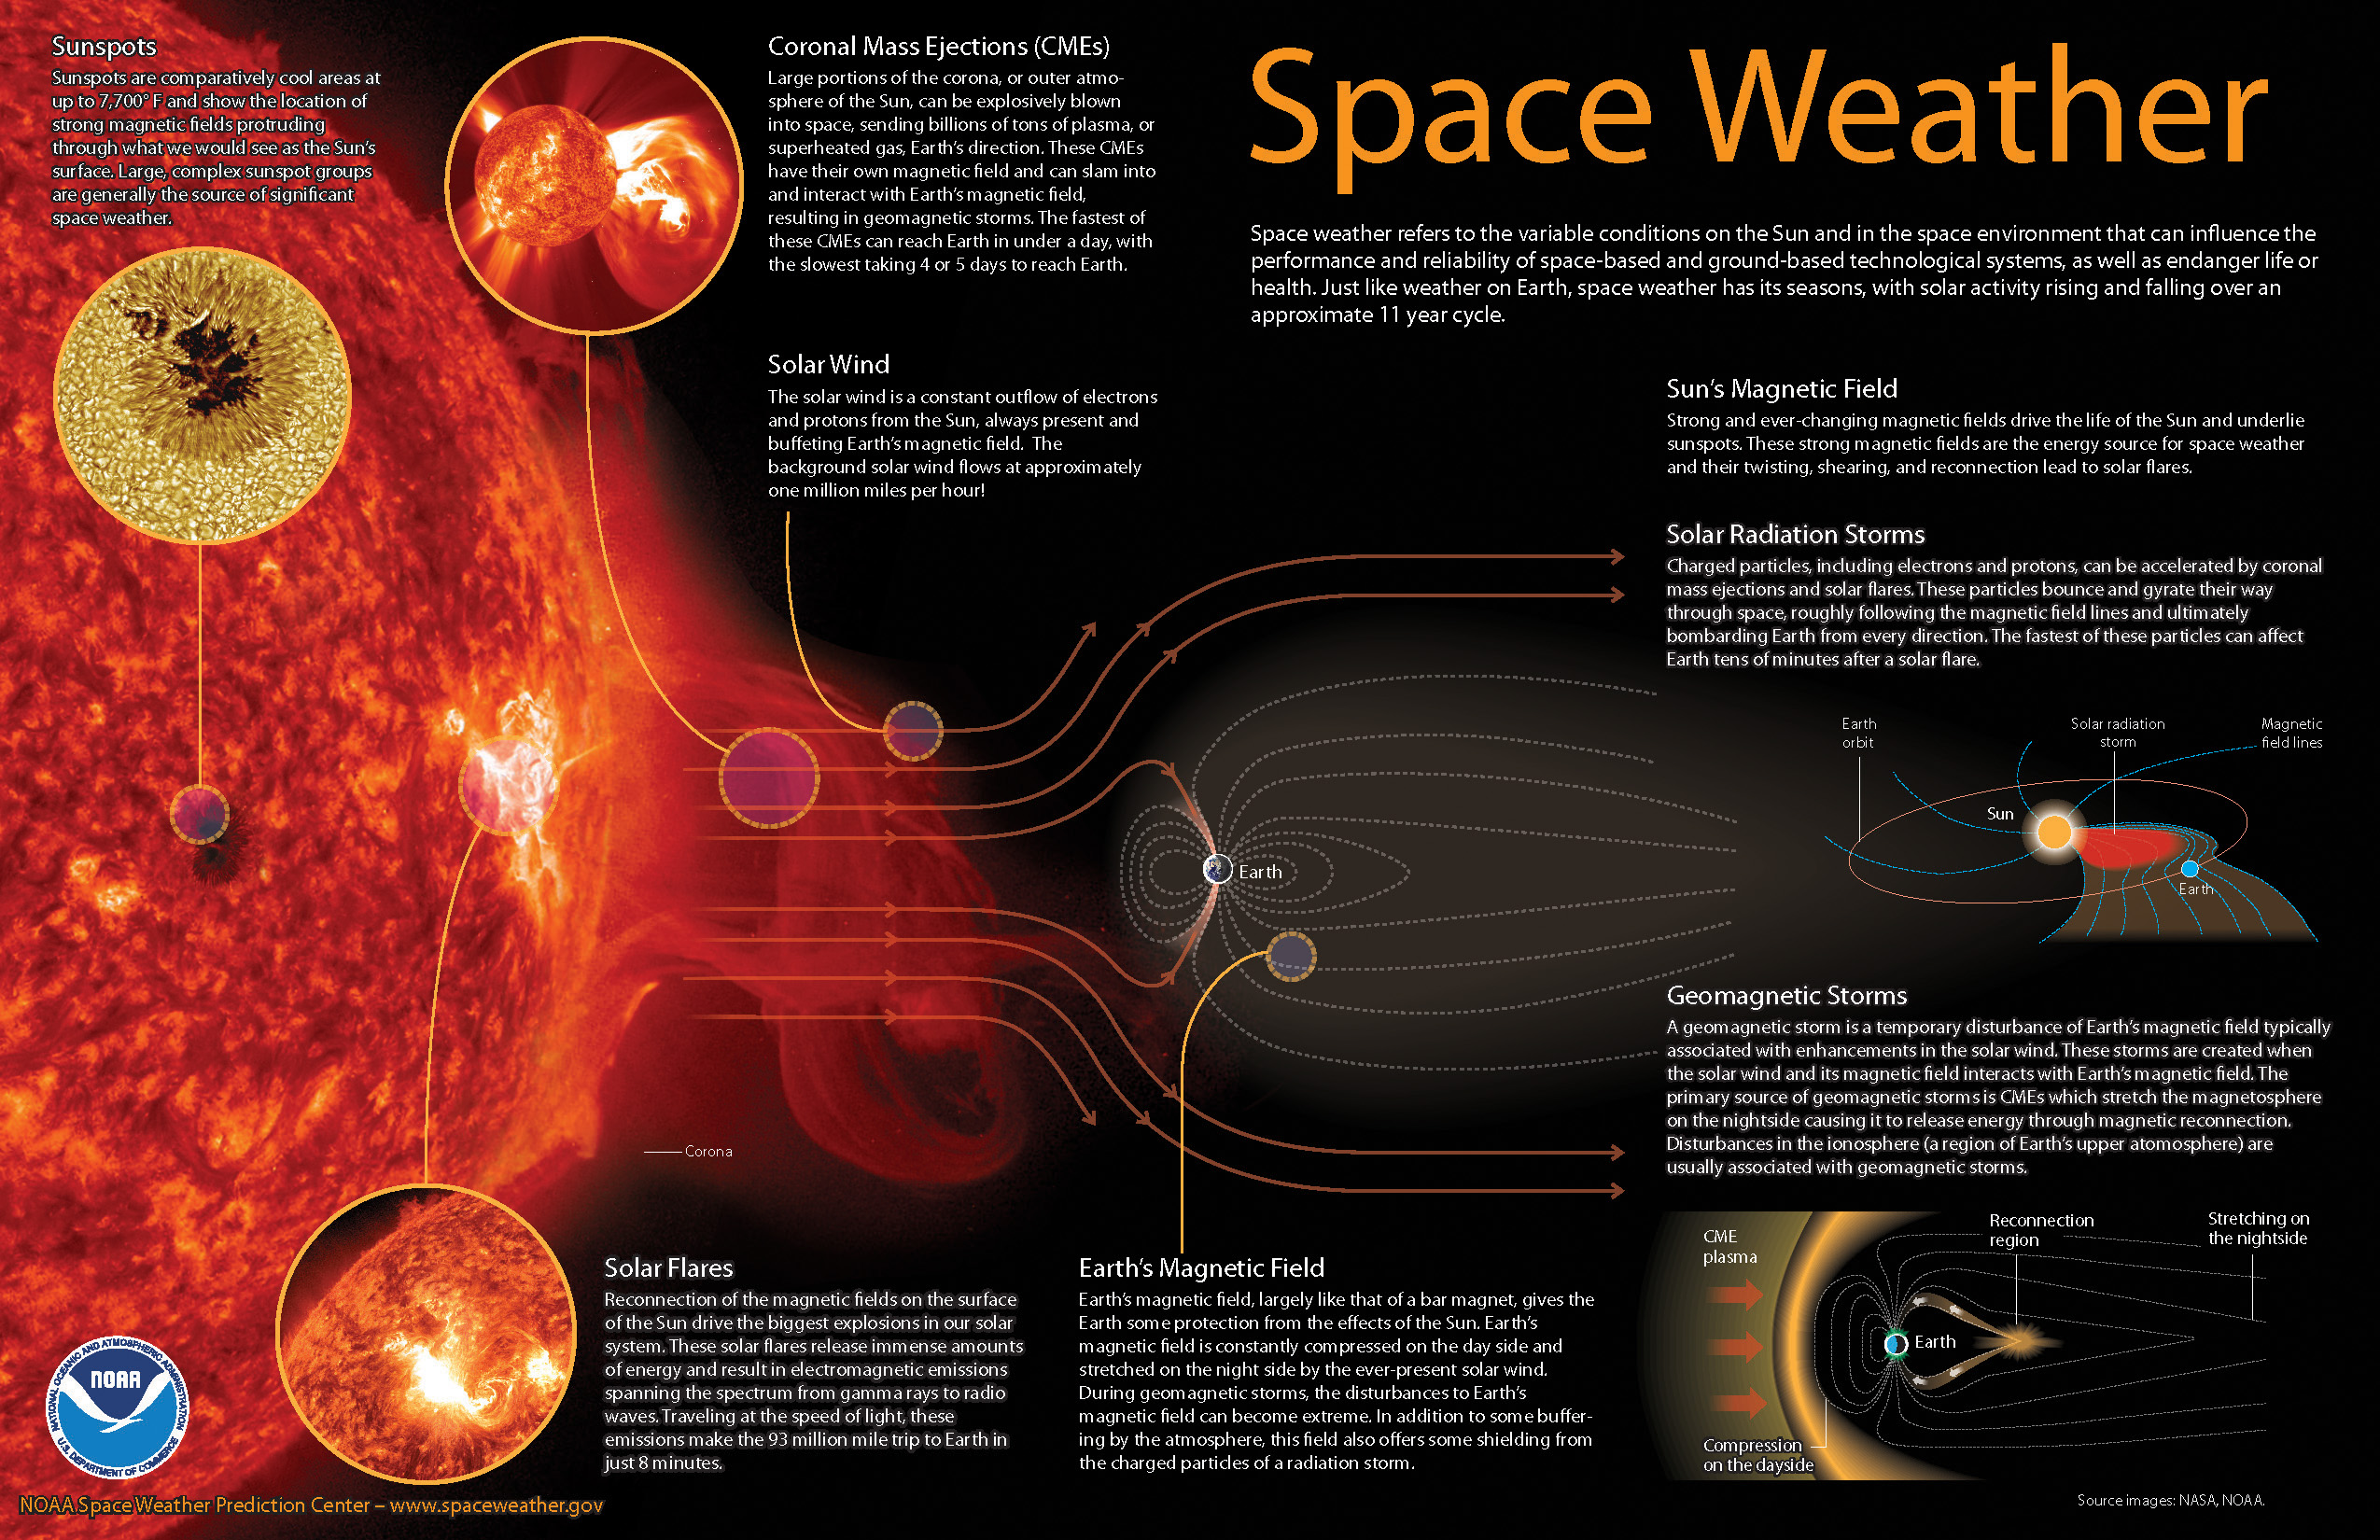 INFOGRAPHIC-space-weather-NOAA-061716-2550x1650-original.jpg